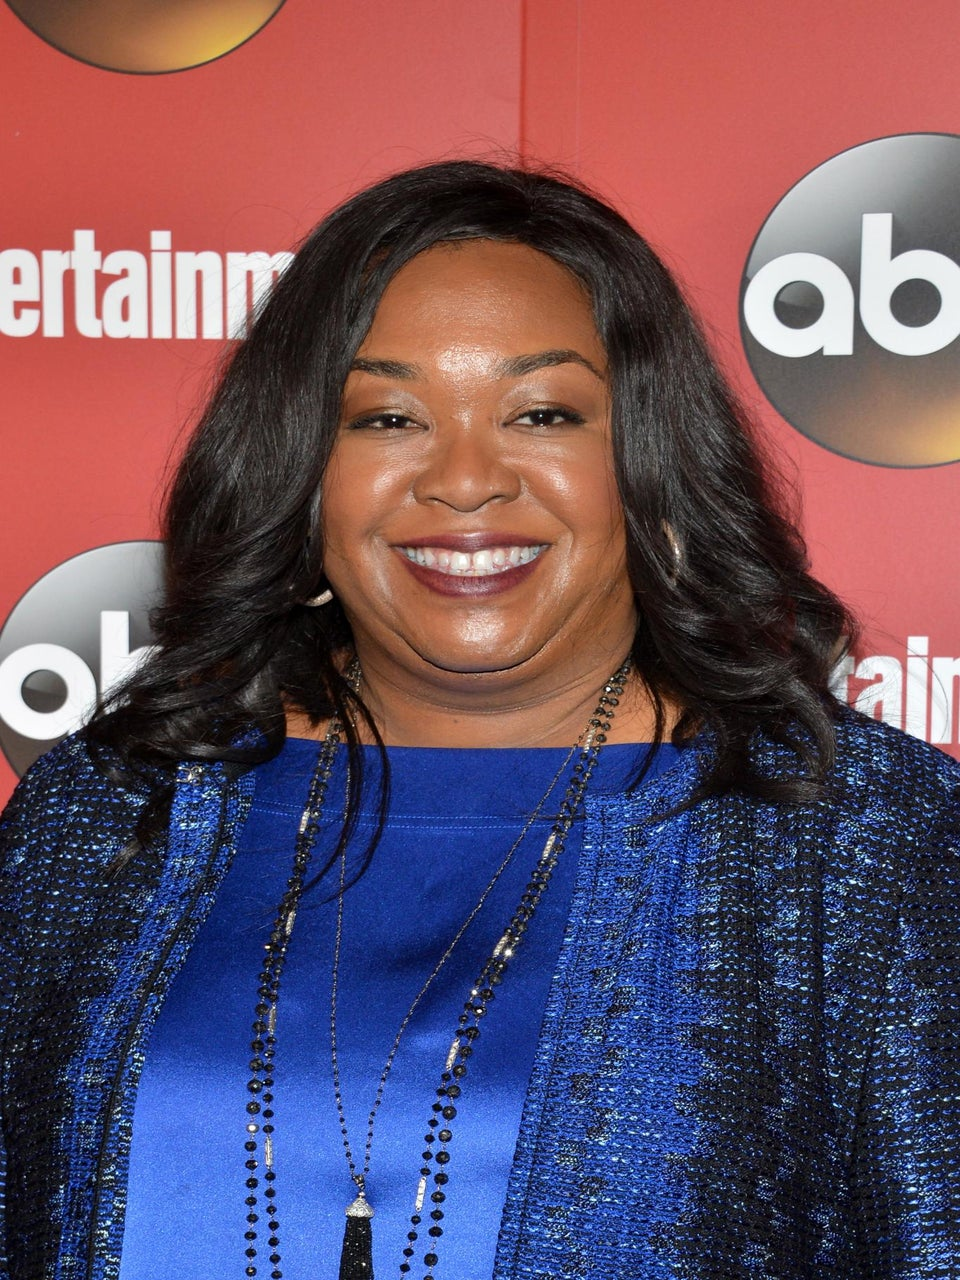 Shonda Rhimes Says Peabody Win was 'A Complete Shock'